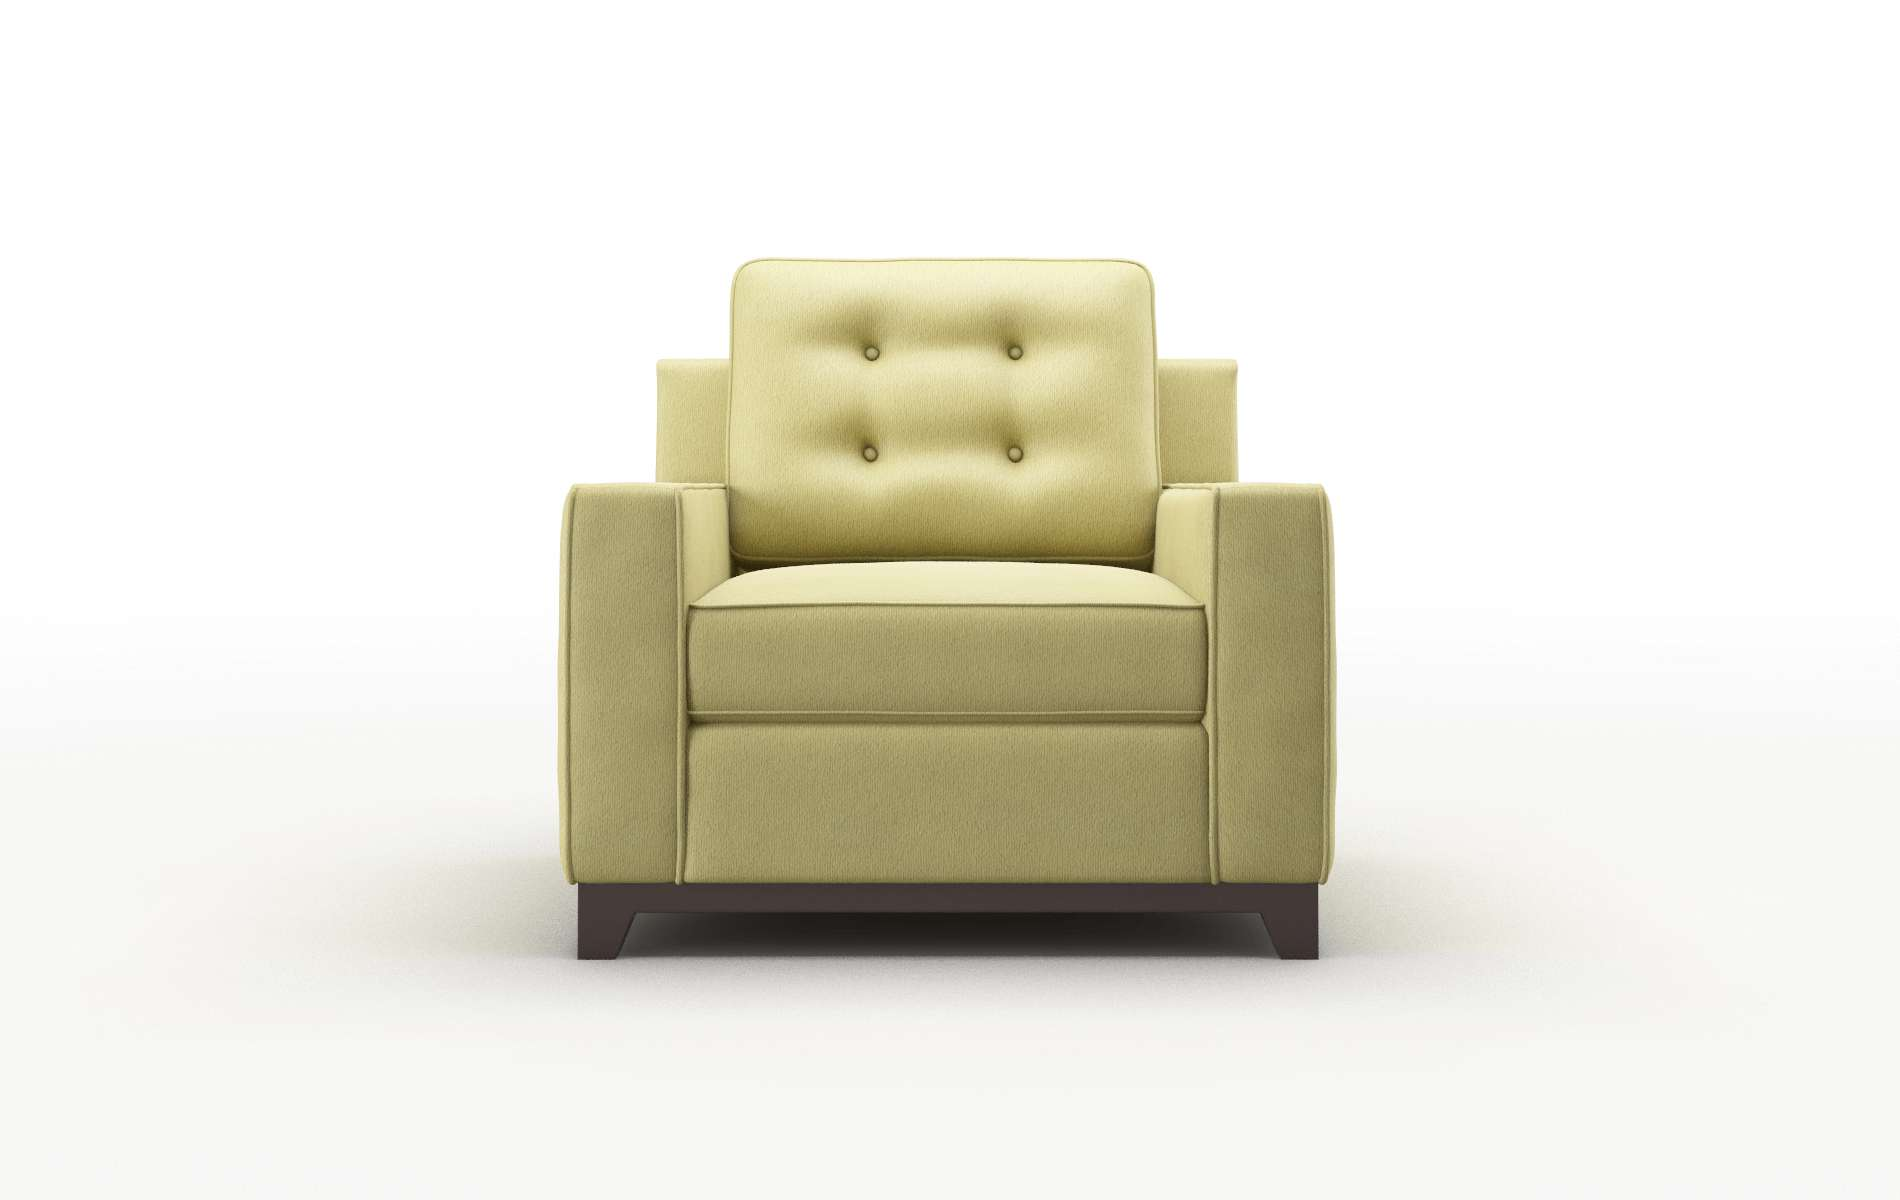 Alexandria Bella Apple Chair espresso legs 1